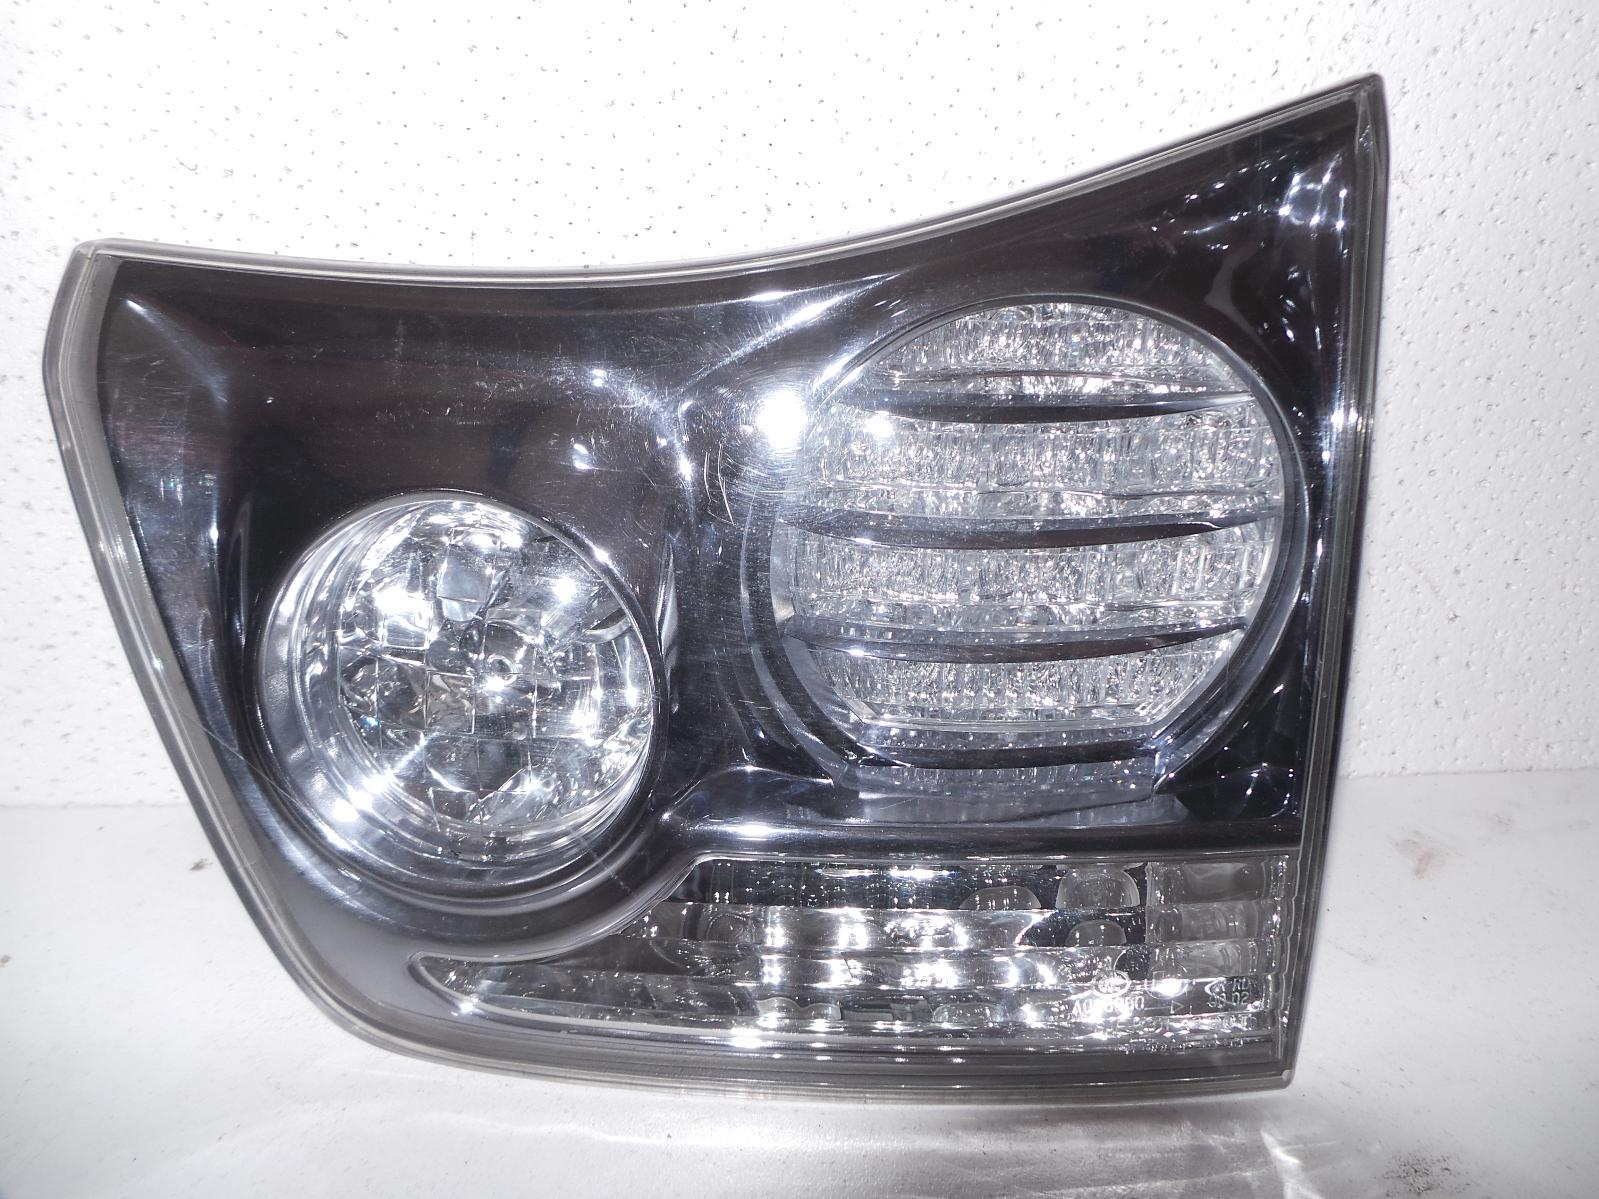 LEXUS RX350, Rear Garnish, RX400H, TAILGATE LAMP (RH SIDE), MHU3#, 09/06-02/09